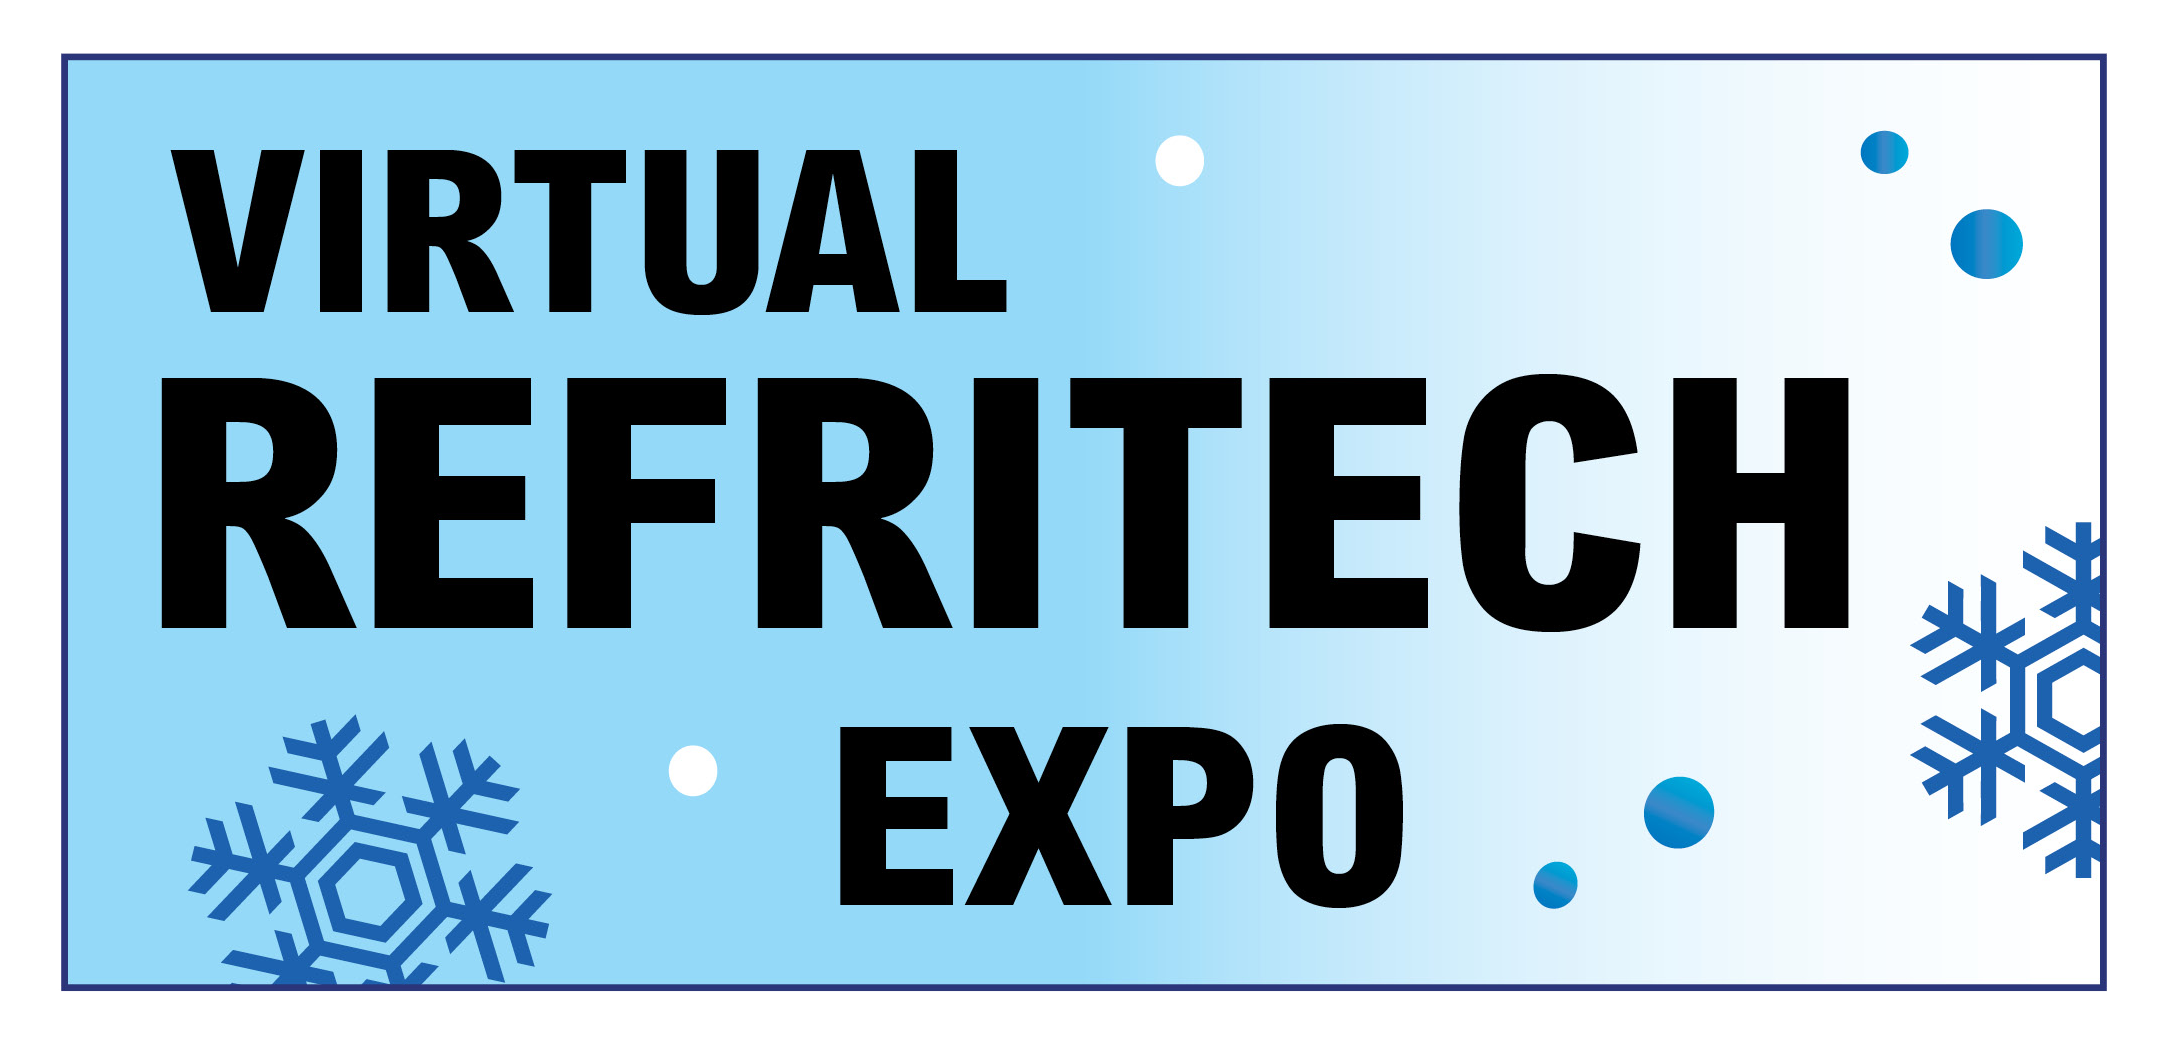 VIRTUAL REFRITECH EXPO 2020